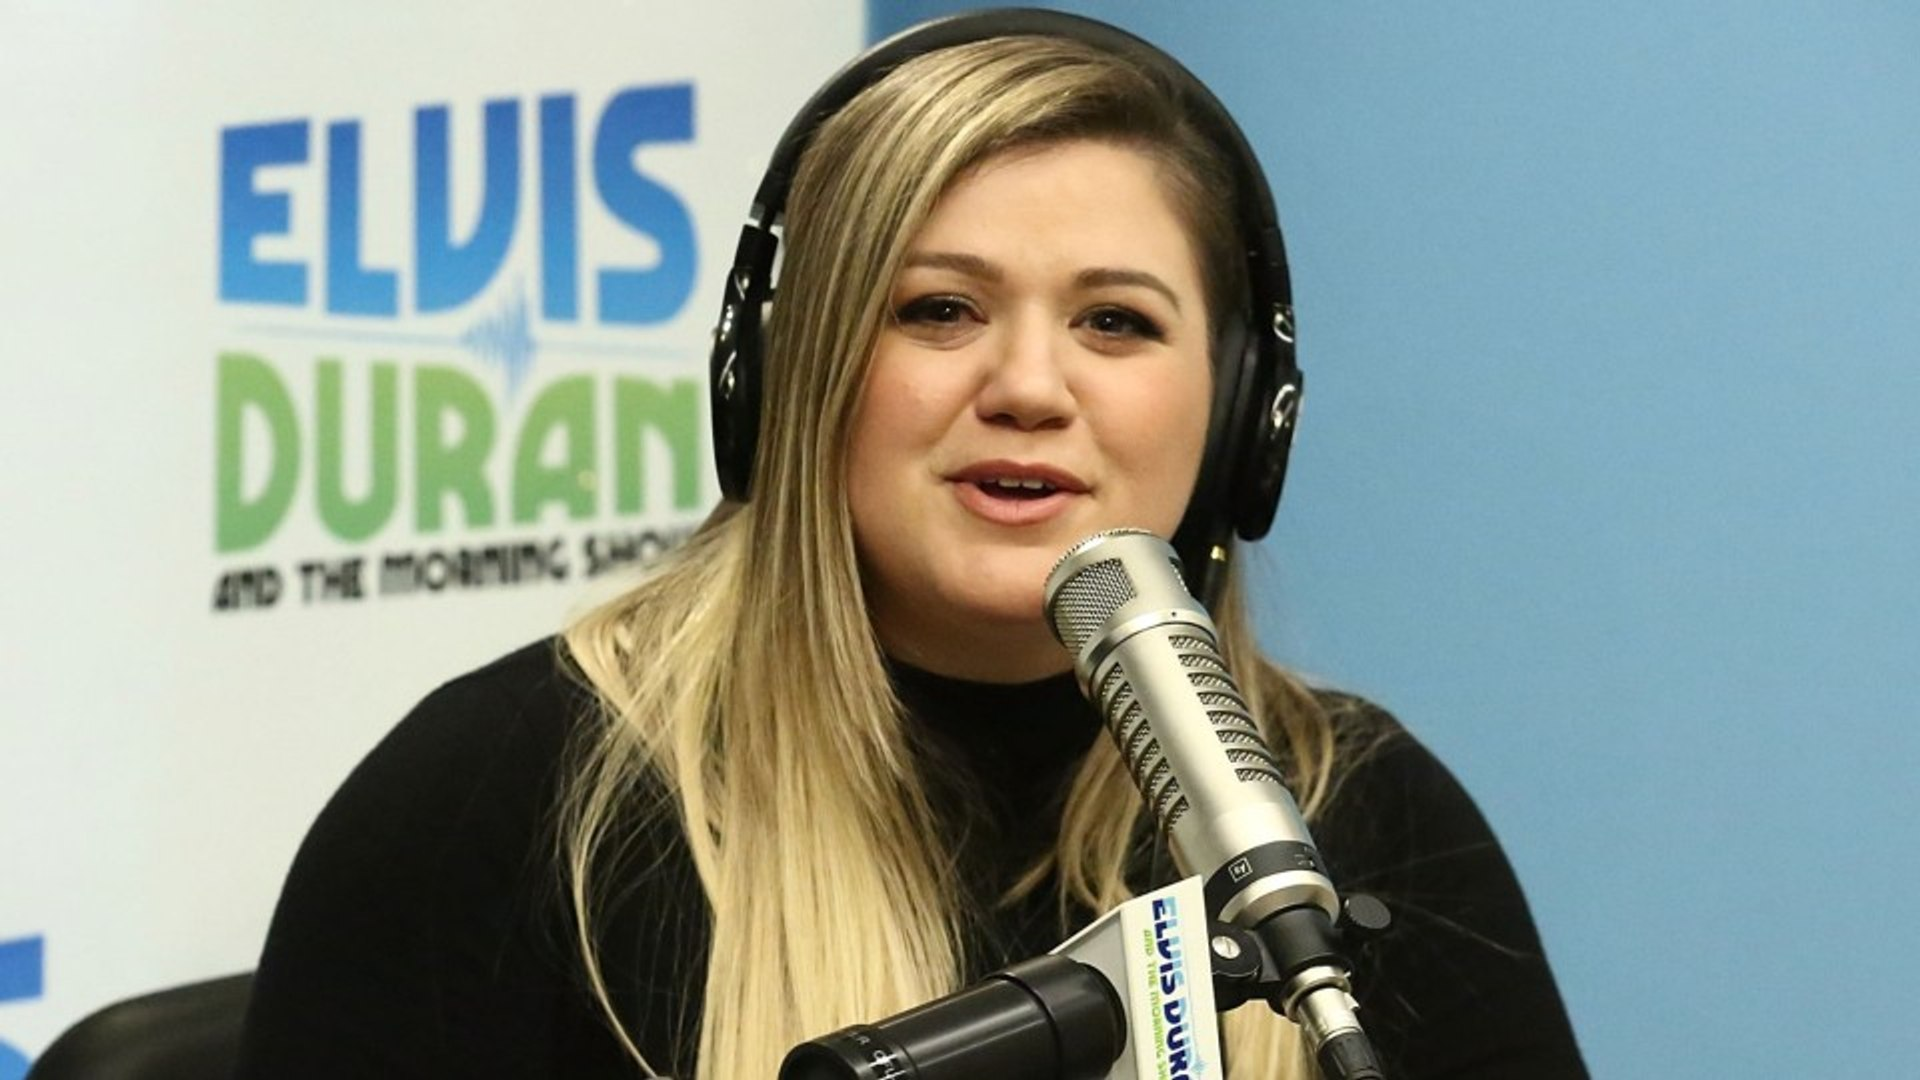 Kelly Clarkson Loops & Laughs At Studio Voice Cracks